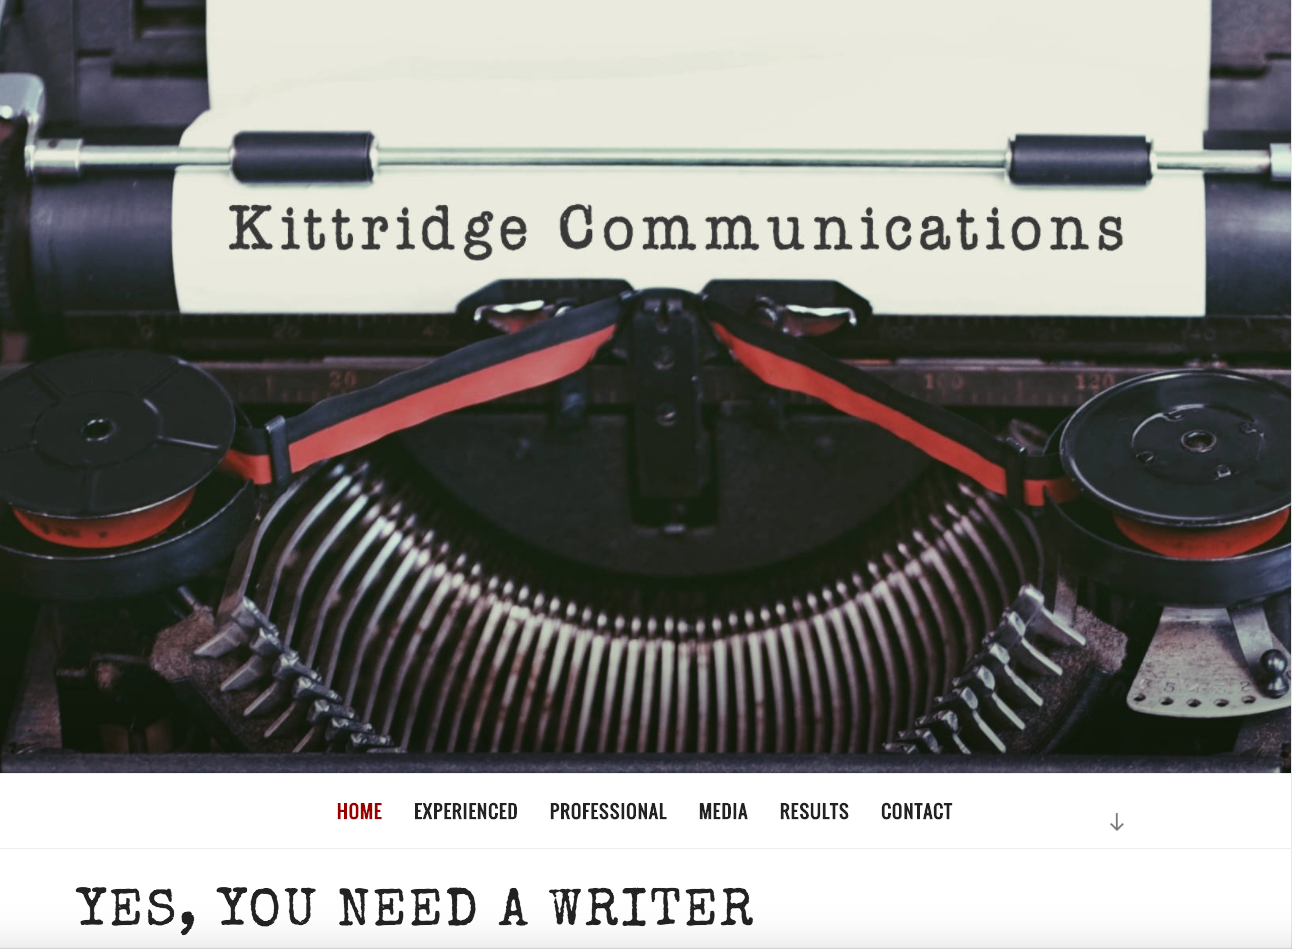 KIttridge Communications